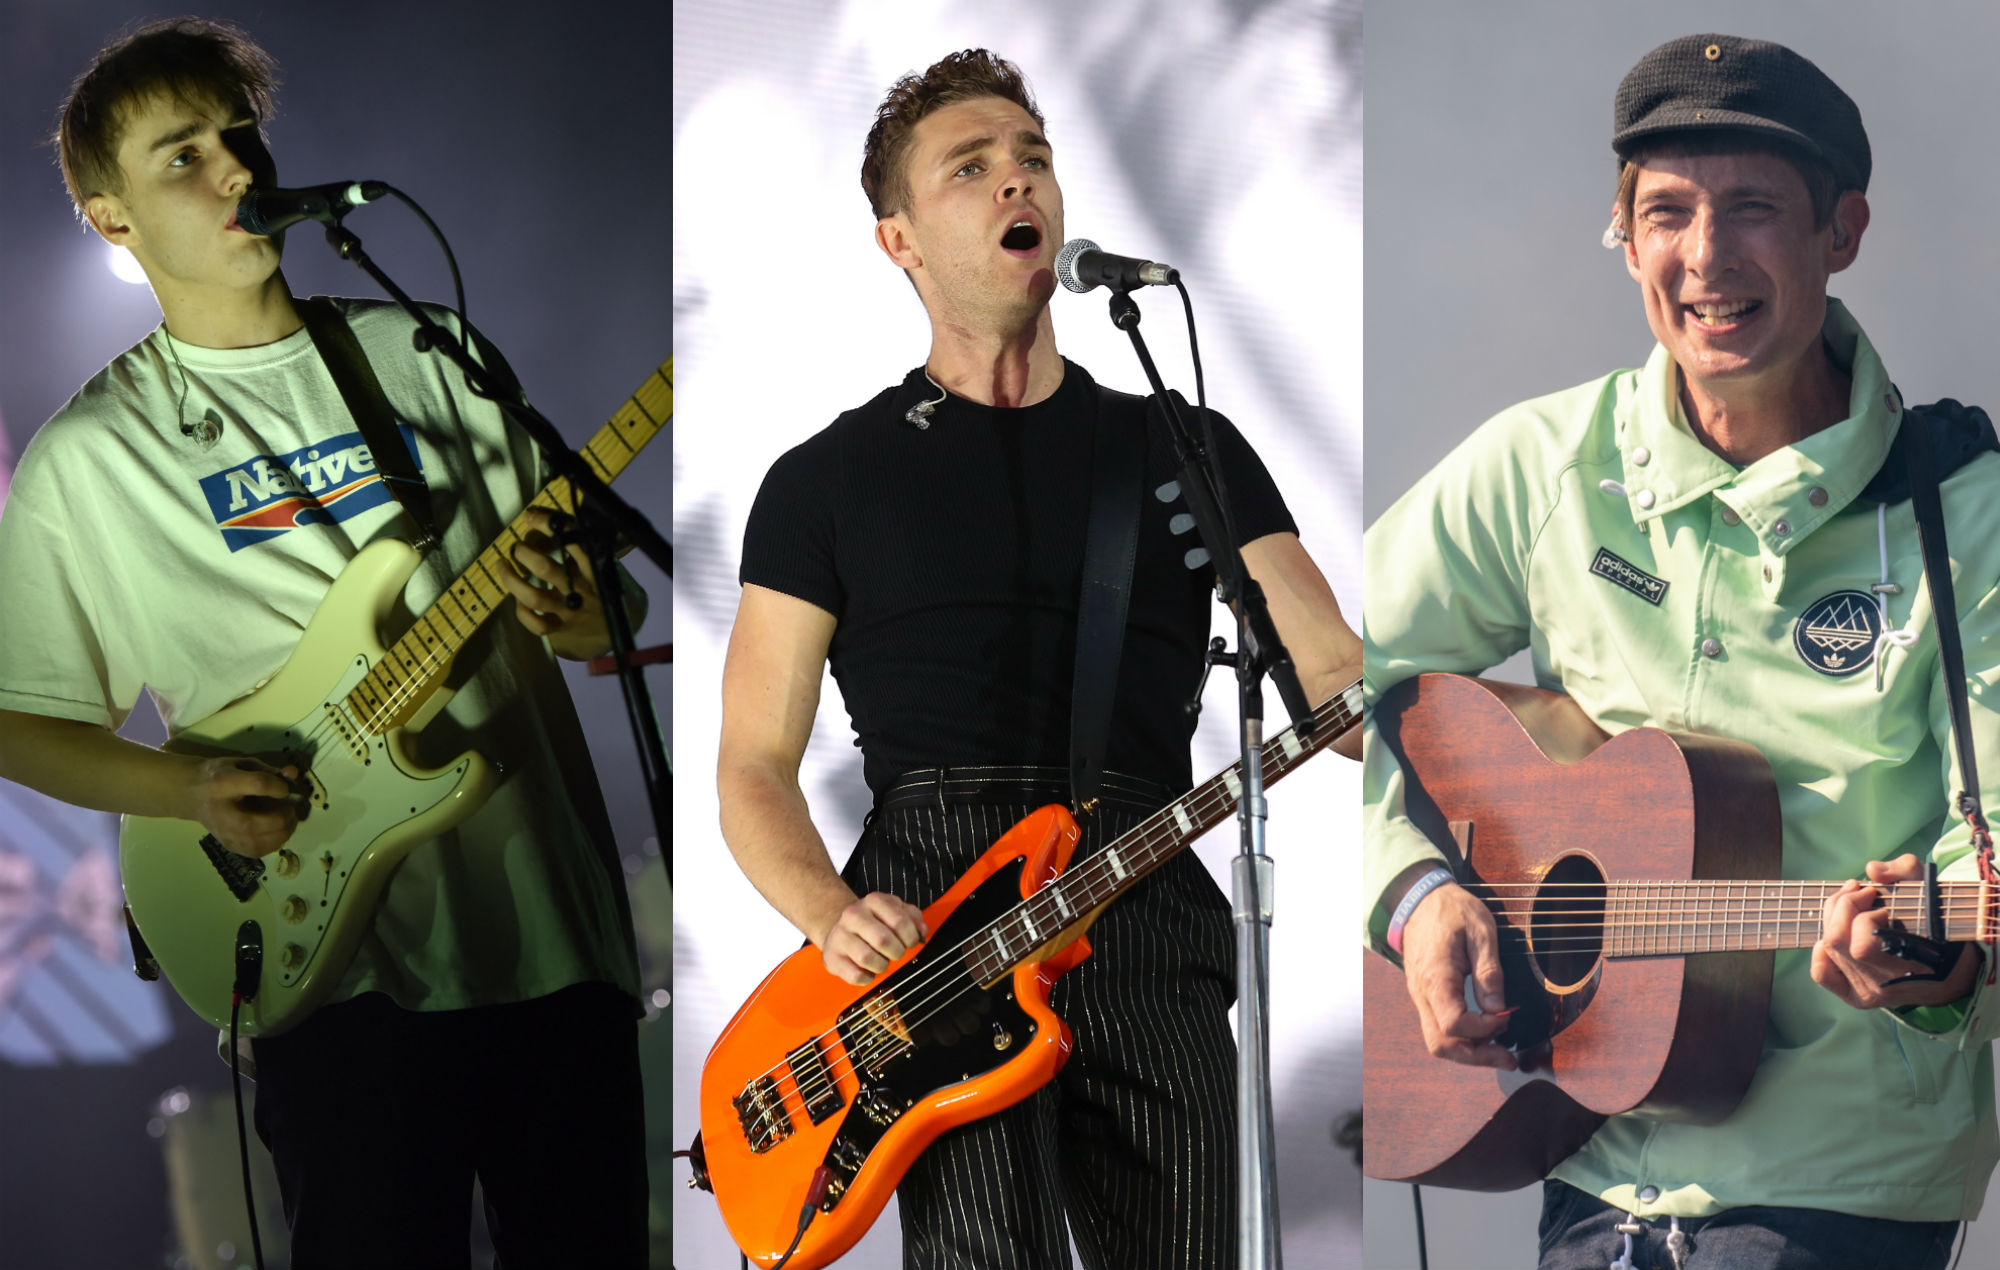 Royal Blood, Gerry Cinnamon and Sam Fender lead This Is Tomorrow 2020 line-up